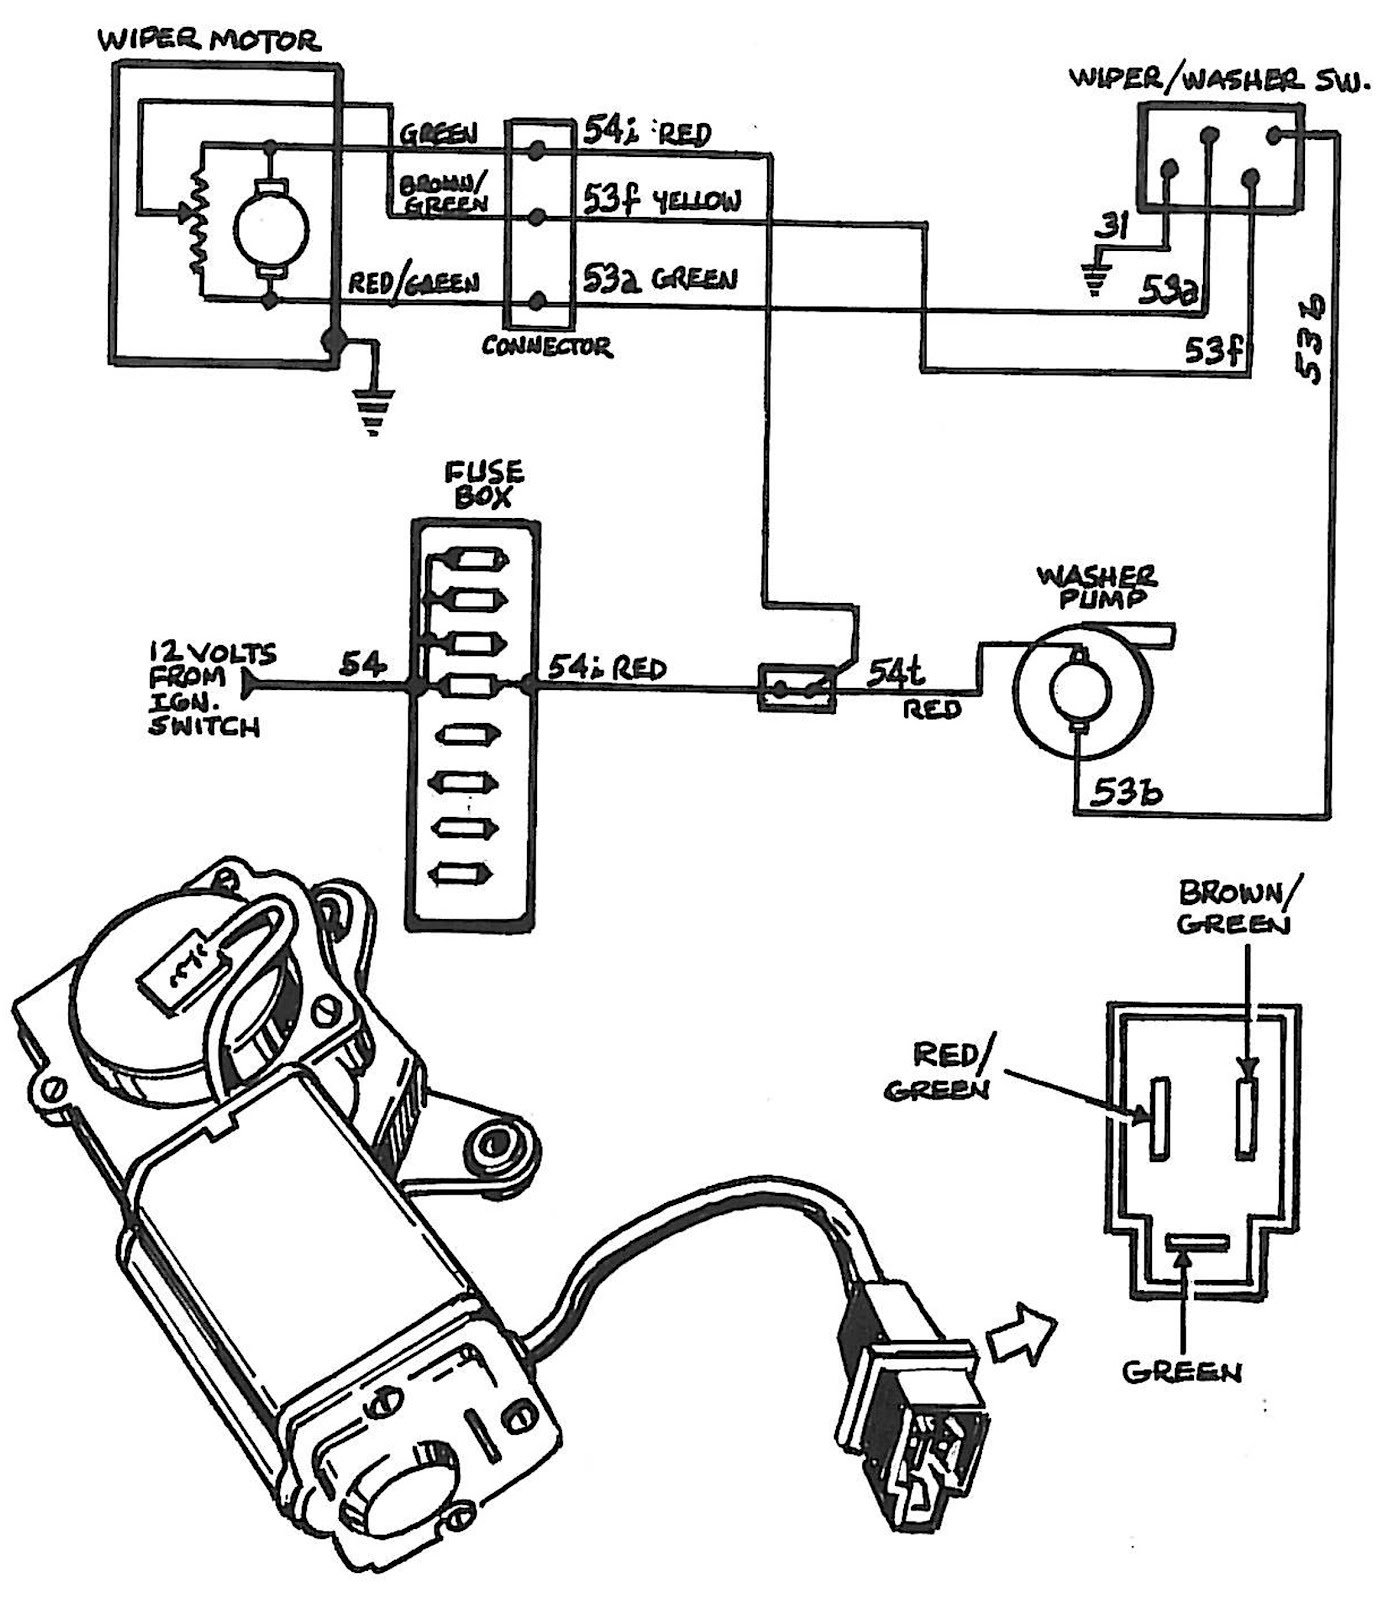 Diagram 1966 Chevelle Wiper Motor Wiring Diagram Picture Full Version Hd Quality Diagram Picture Pvdiagramxcaro Annuncipagineverdi It